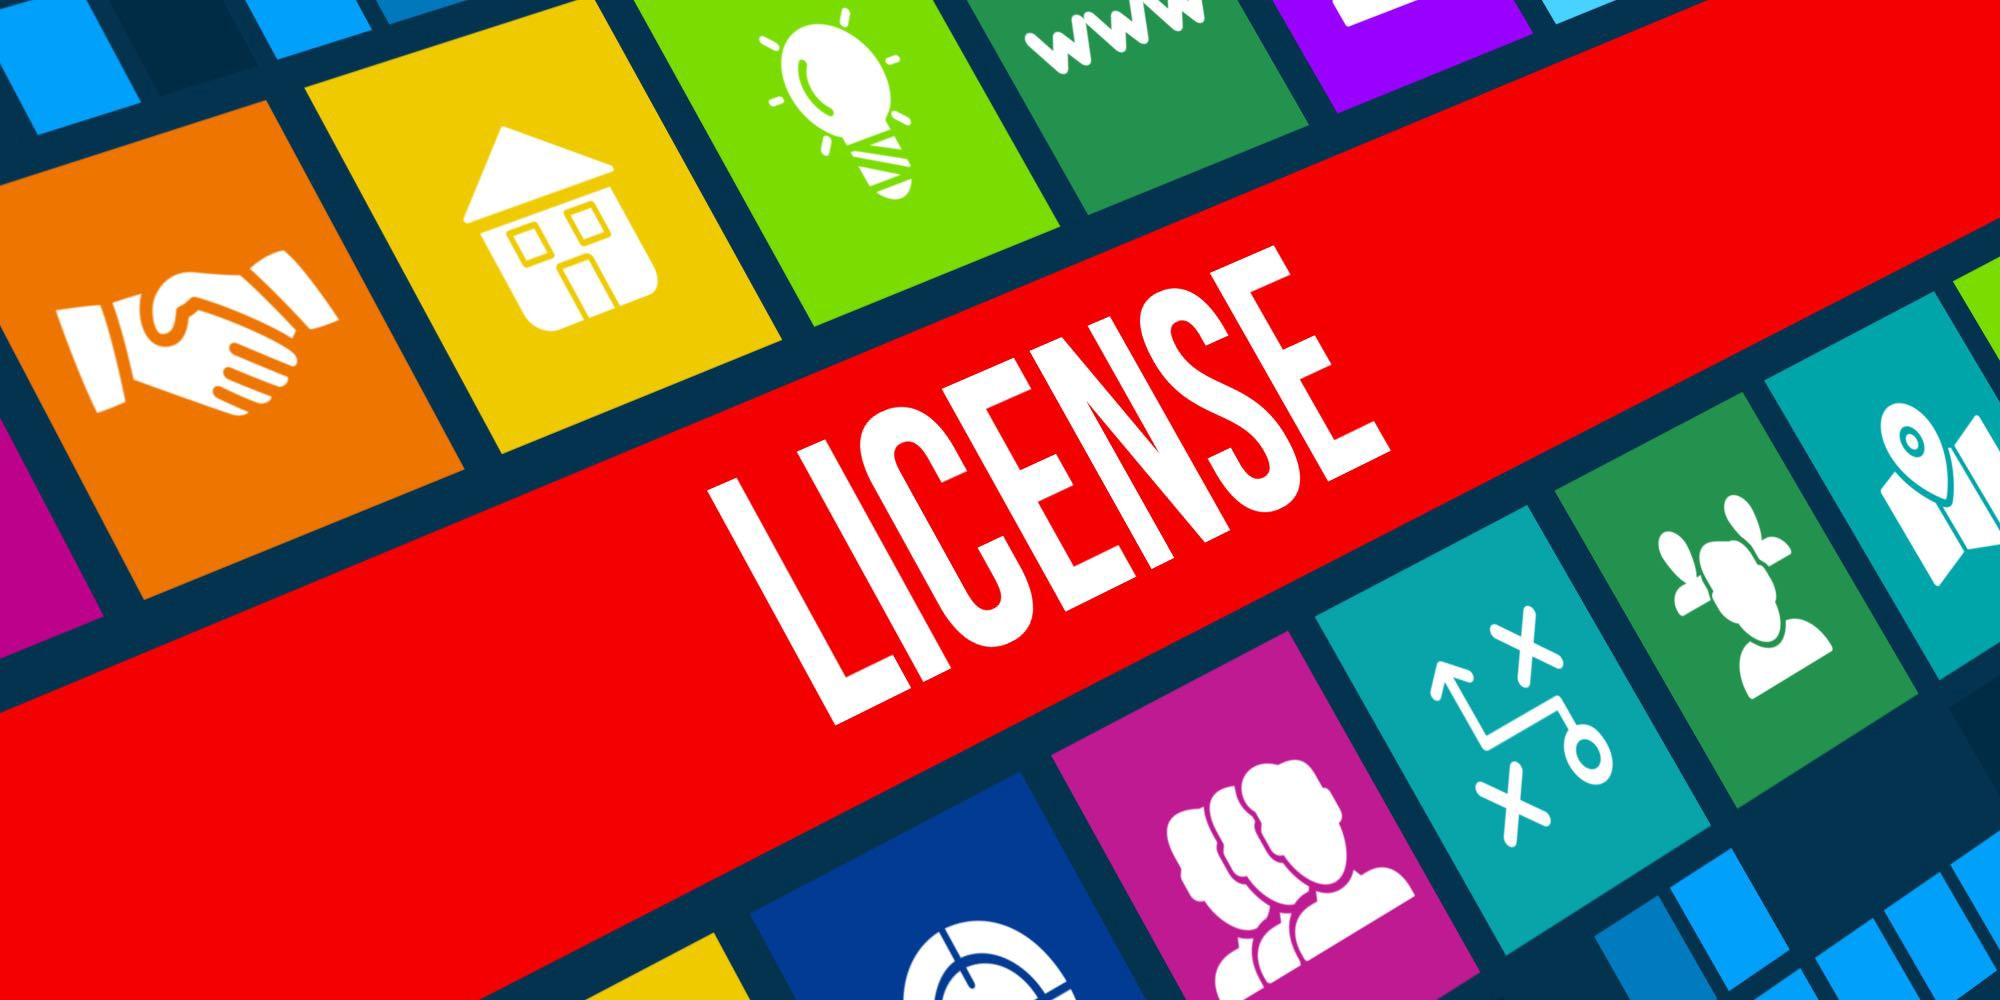 How To Get Money Transmitter License Coverage For Your Startup